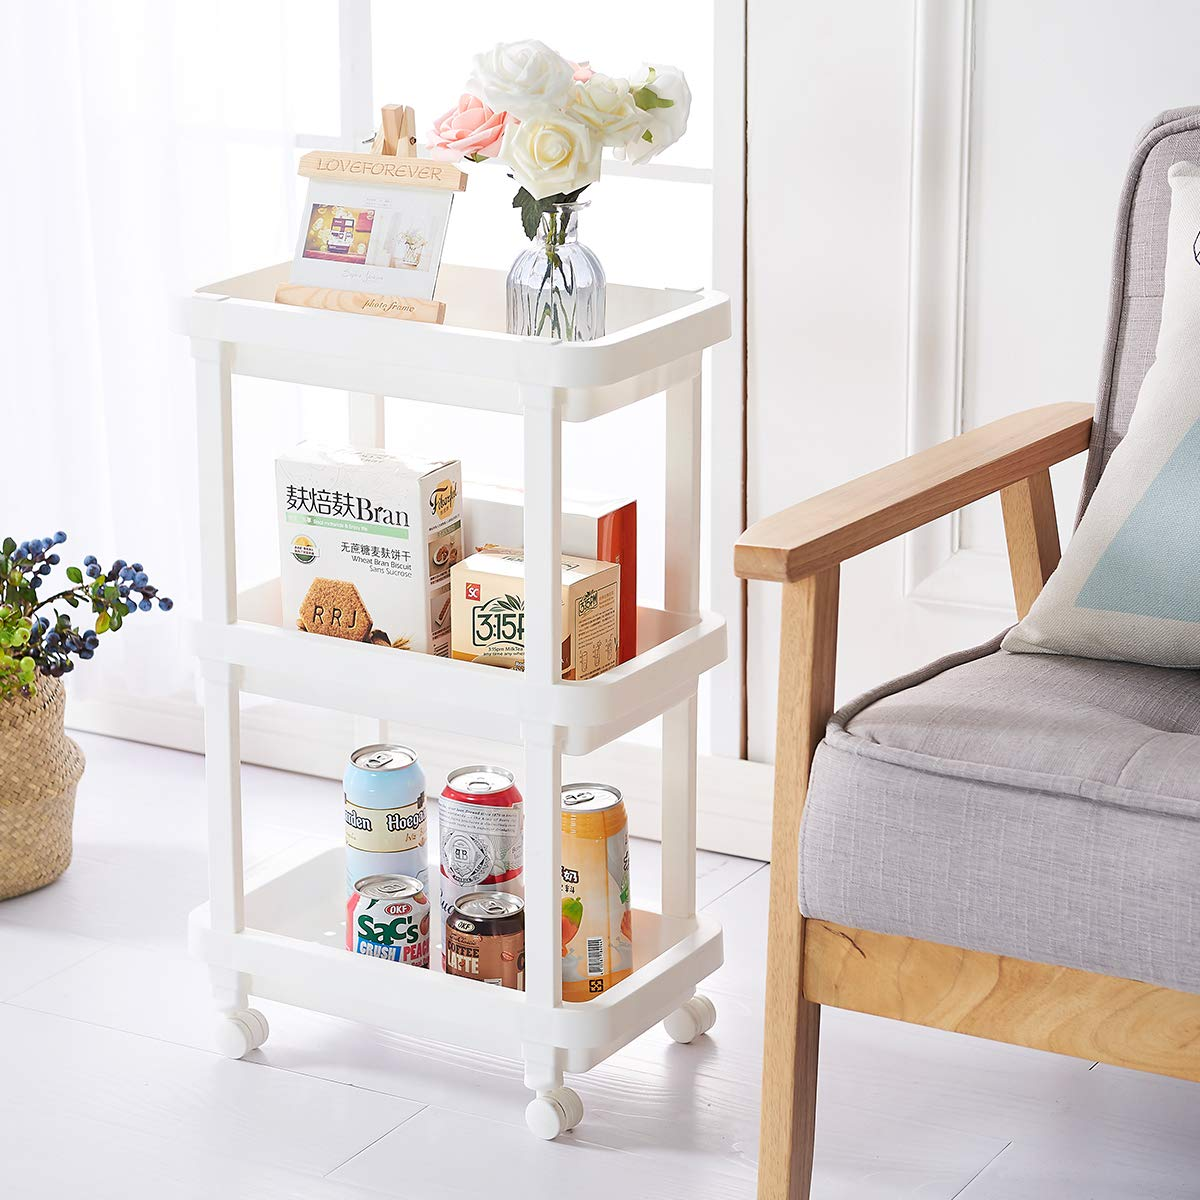 3-Tier Slide Out Storage Cart Rolling Utility Cart Storage Shelf Rack for Kitchen Living Room Bathroom Laundry Room & Dressers by Aogist